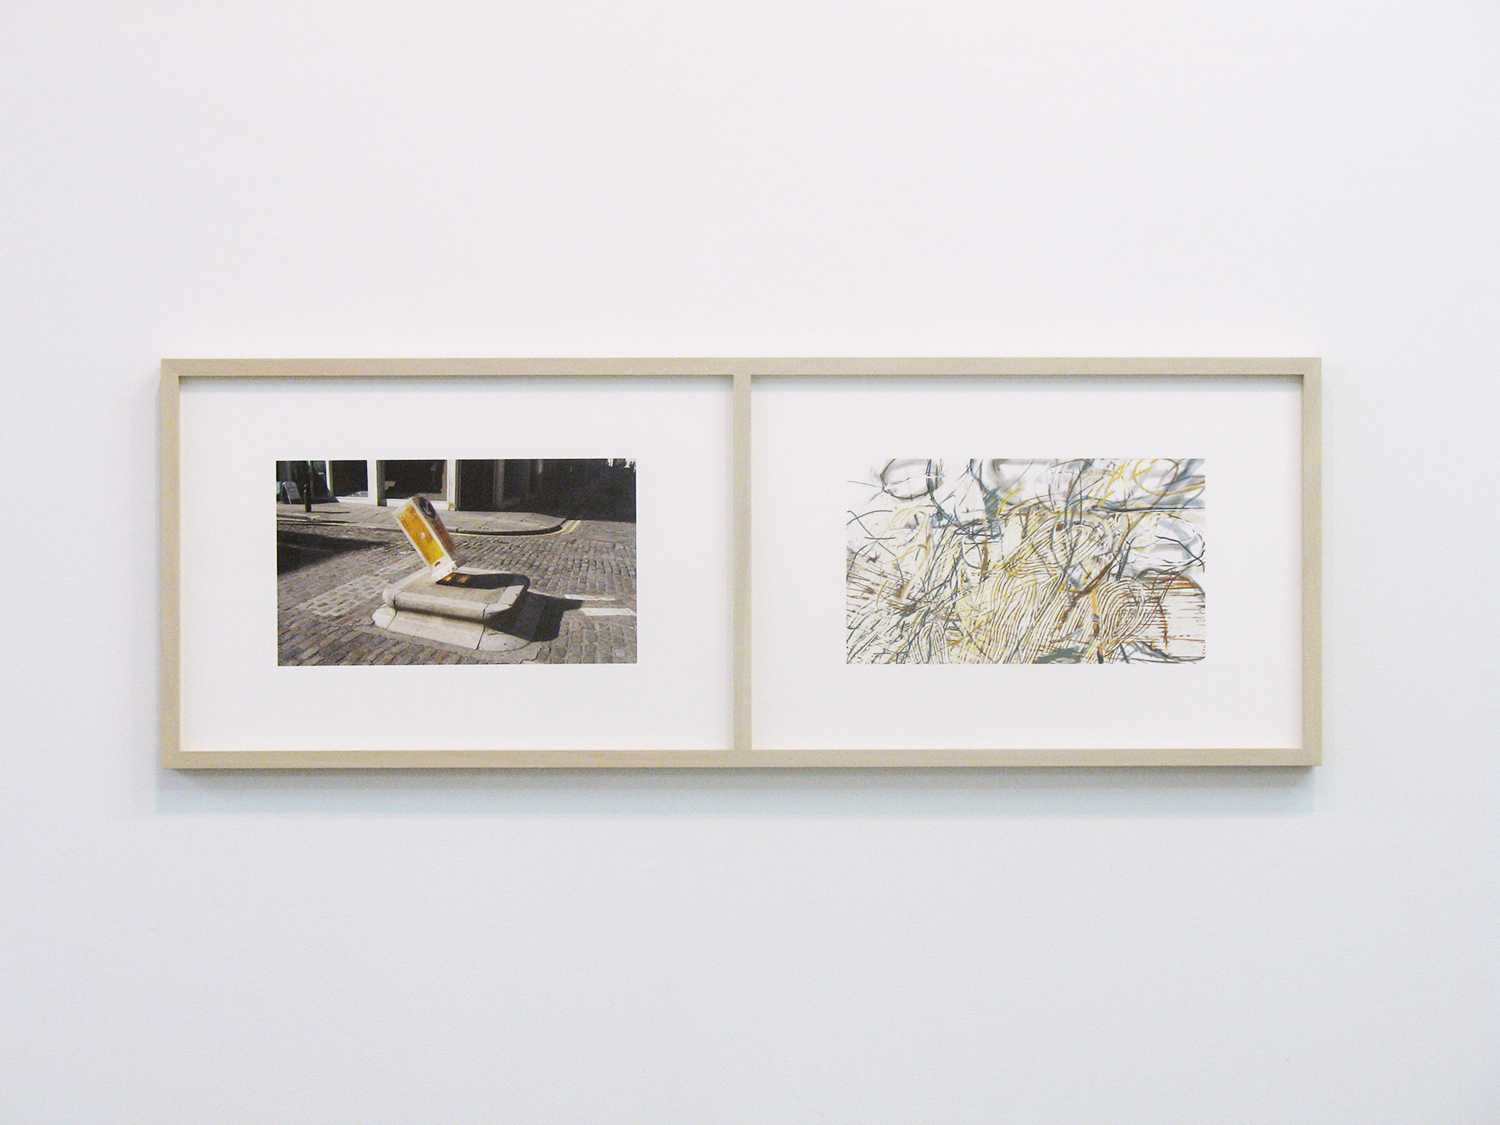 <br>Inkjet print on Archived paper, 329 x 483 mm x 2, 2006